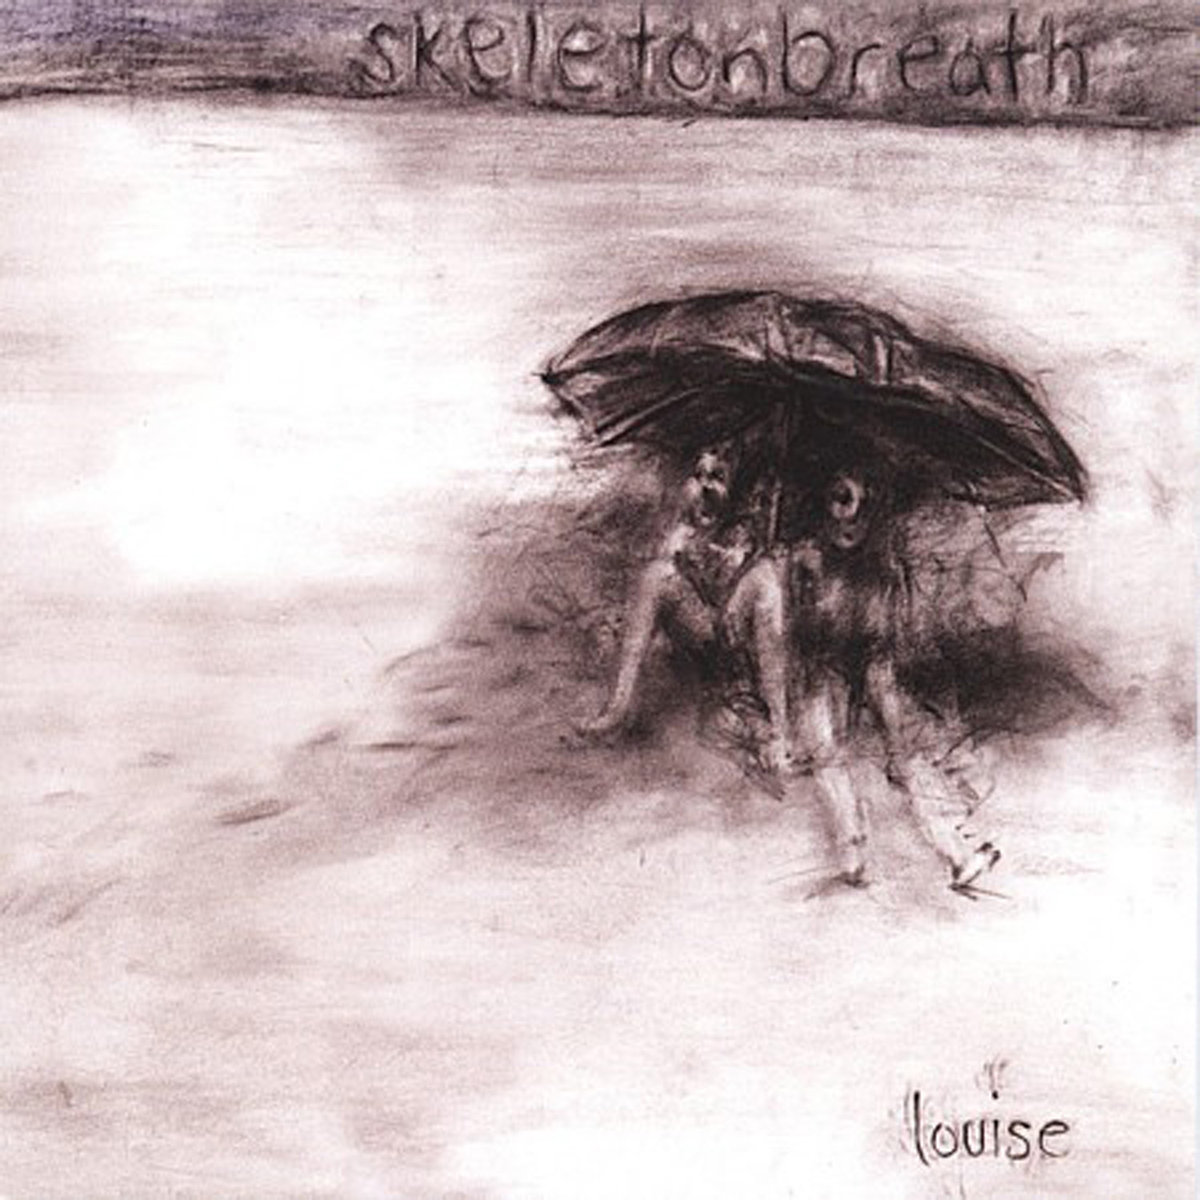 Skeletonbreath - Louise